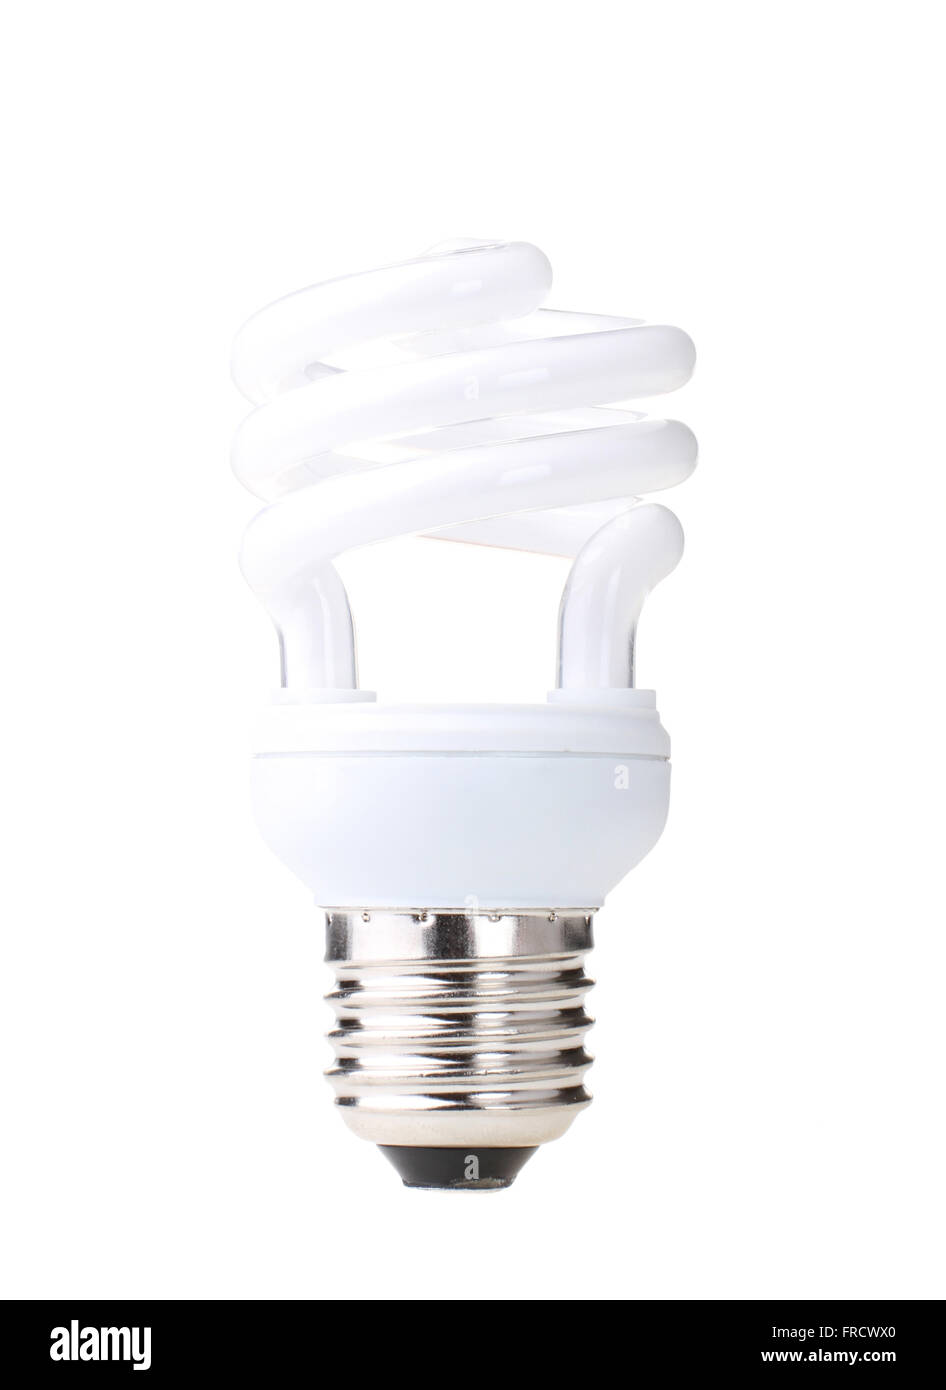 Energy efficient compact fluorescent light globe isolated on a white background. - Stock Image